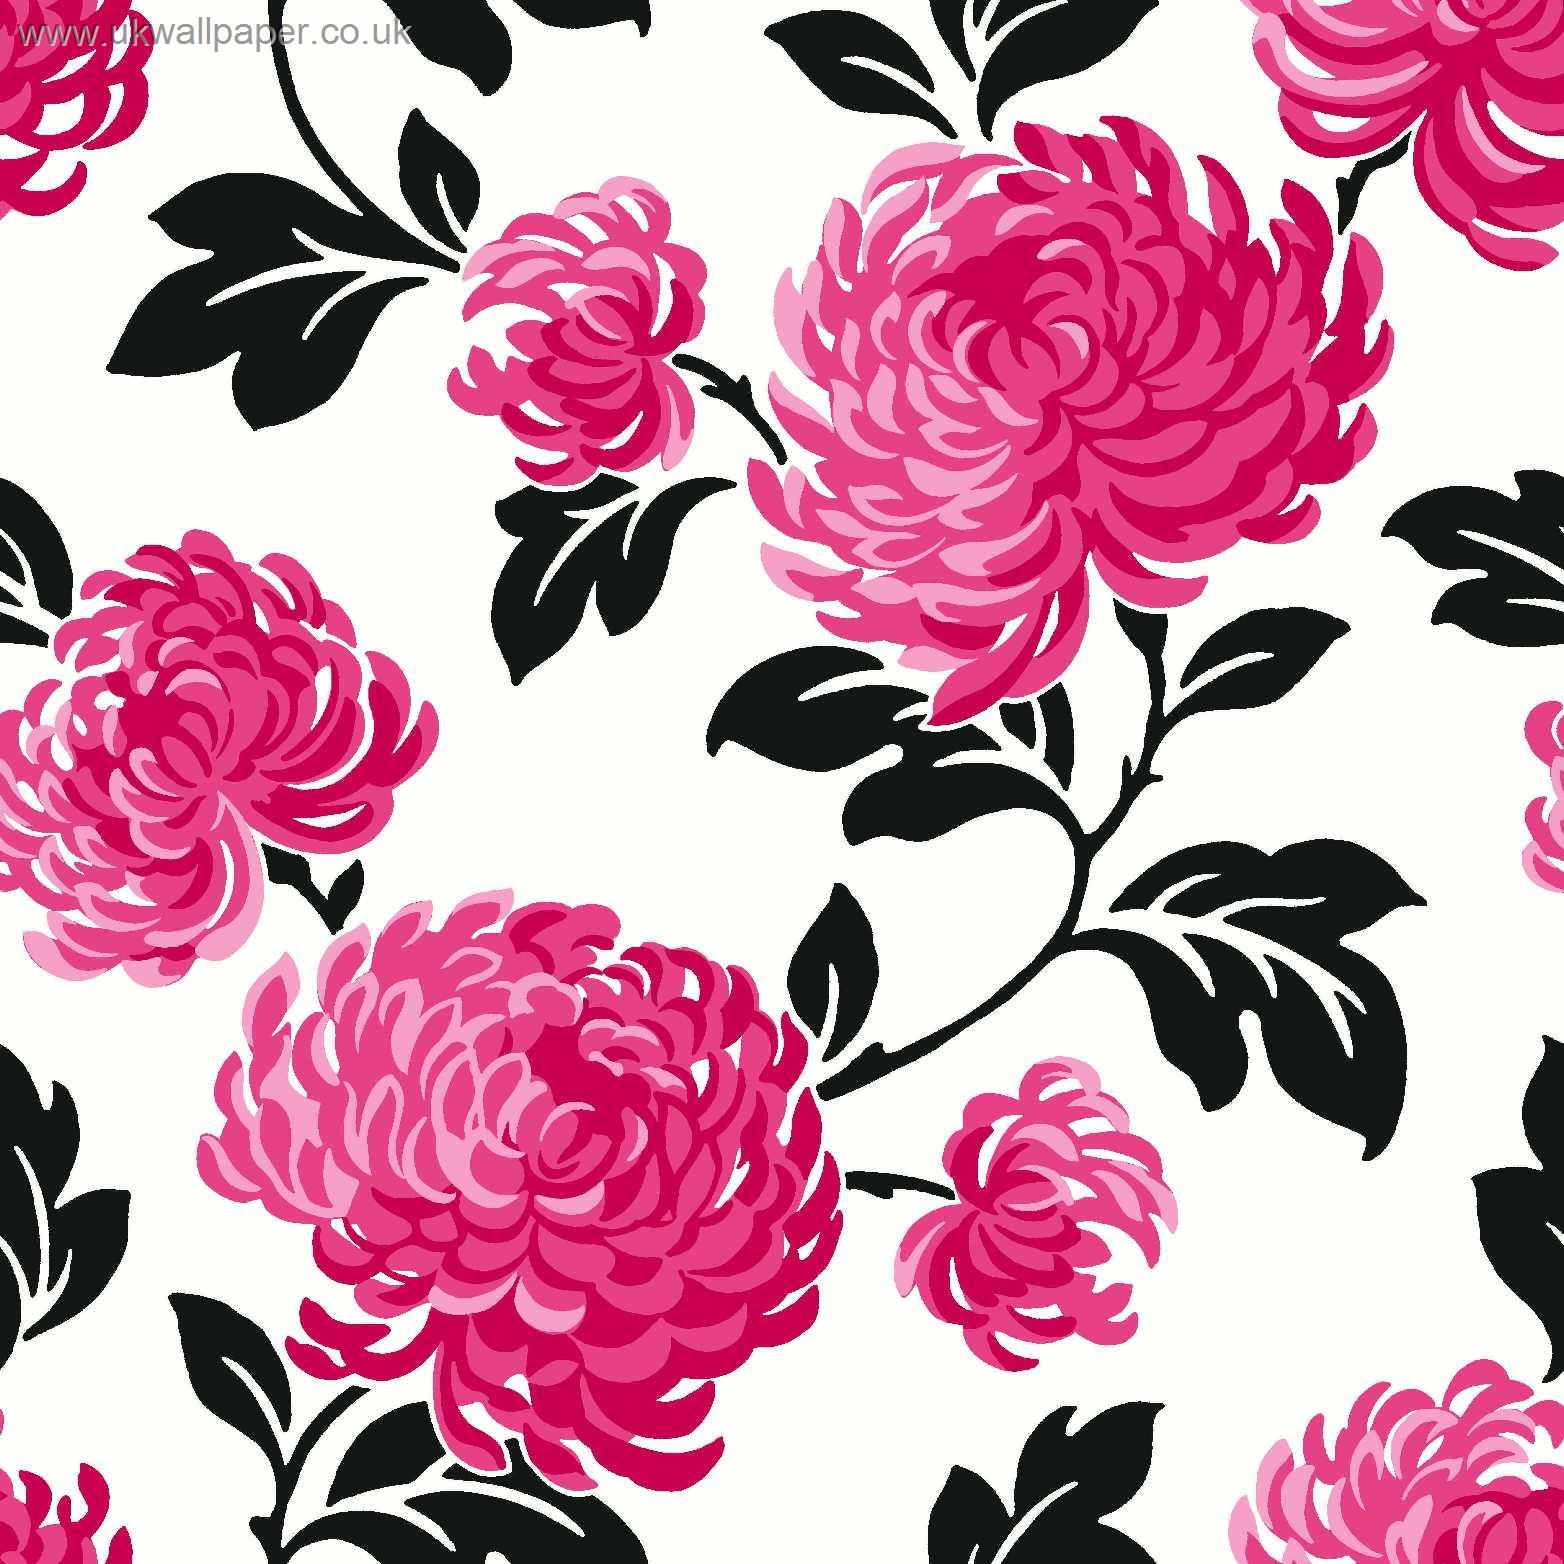 1564x1564px black and pink flower wallpaper wallpapersafari black and pink flower wallpaper mightylinksfo